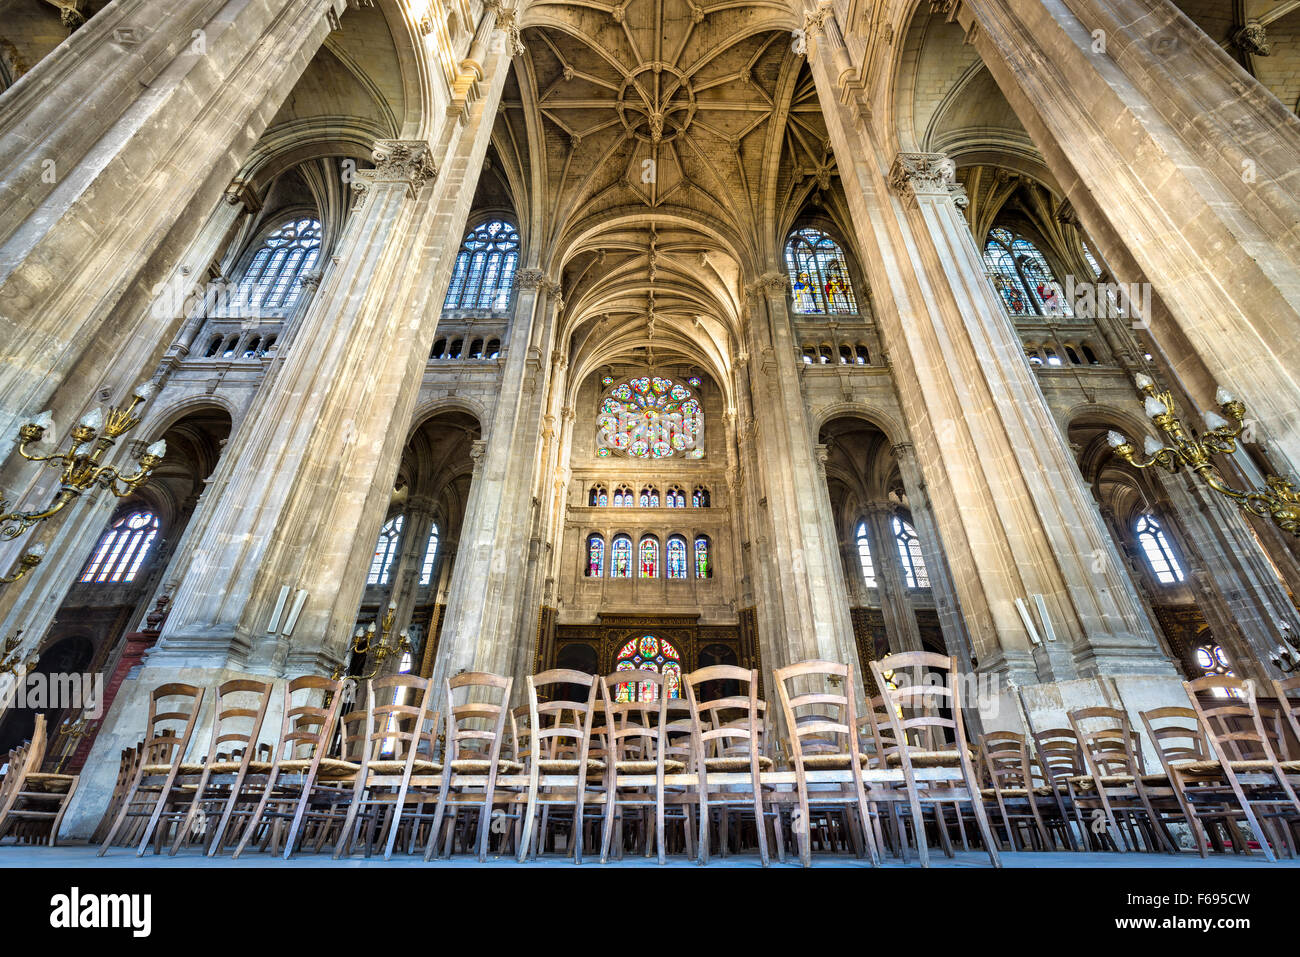 Transept with Vaulted Arches, Church of Saint Eustache, an example of French Gothic architecture. Paris, 75001, - Stock Image